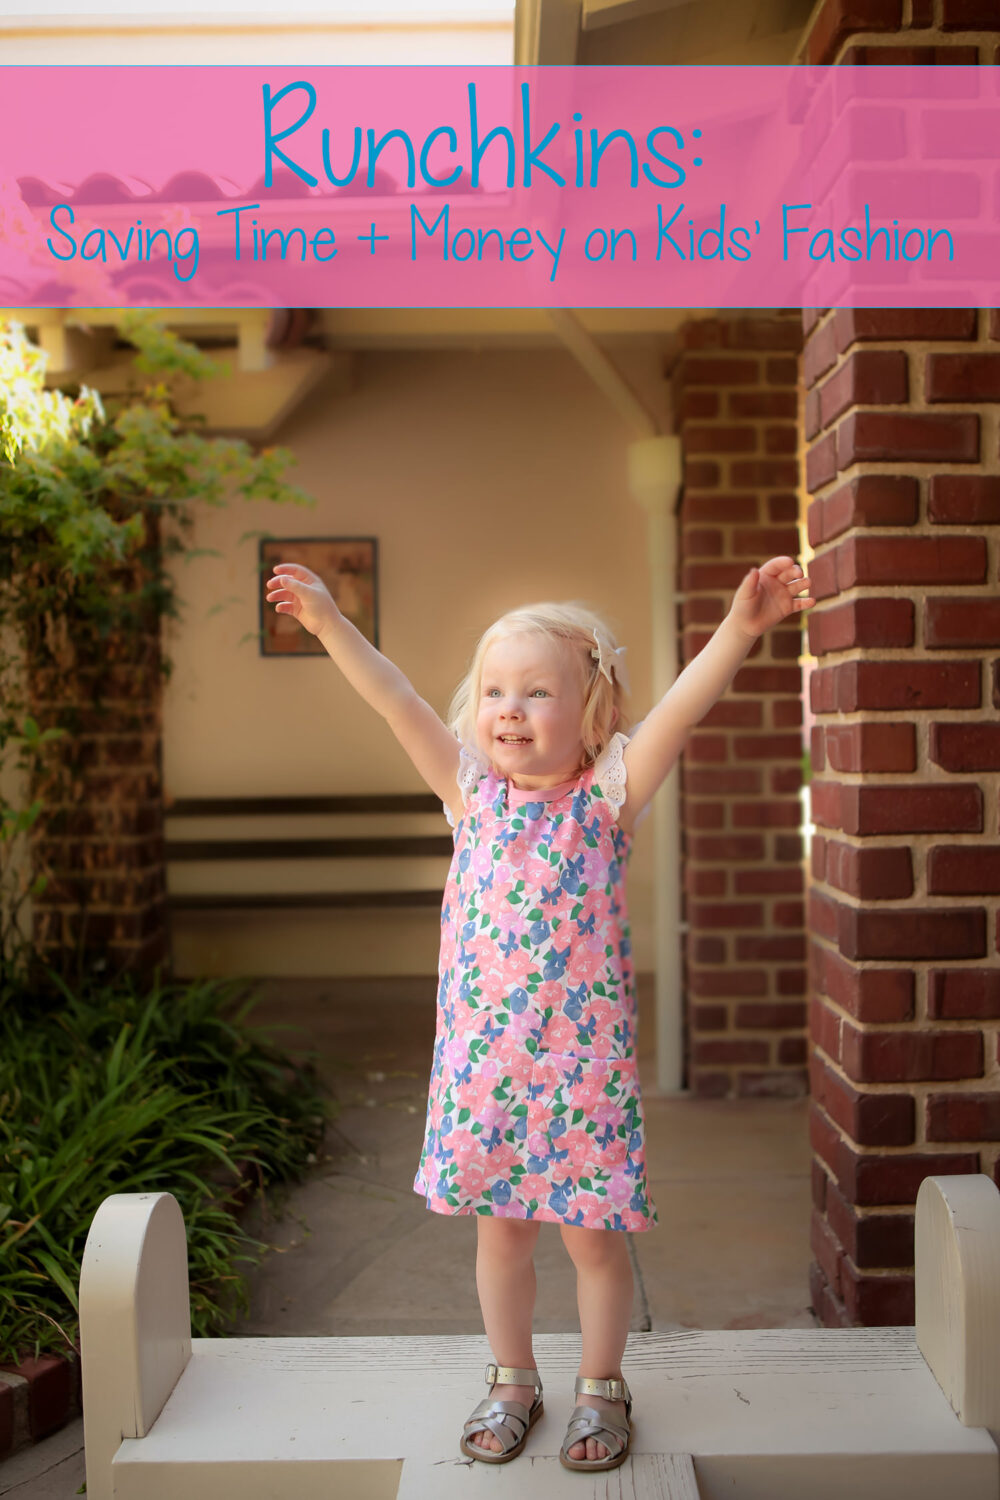 Want to save money and time on shopping for kids' fashion? Runchkins is a great way to get stylish kids' clothing delivered to your door AND they buy back pieces once your child outgrows them!